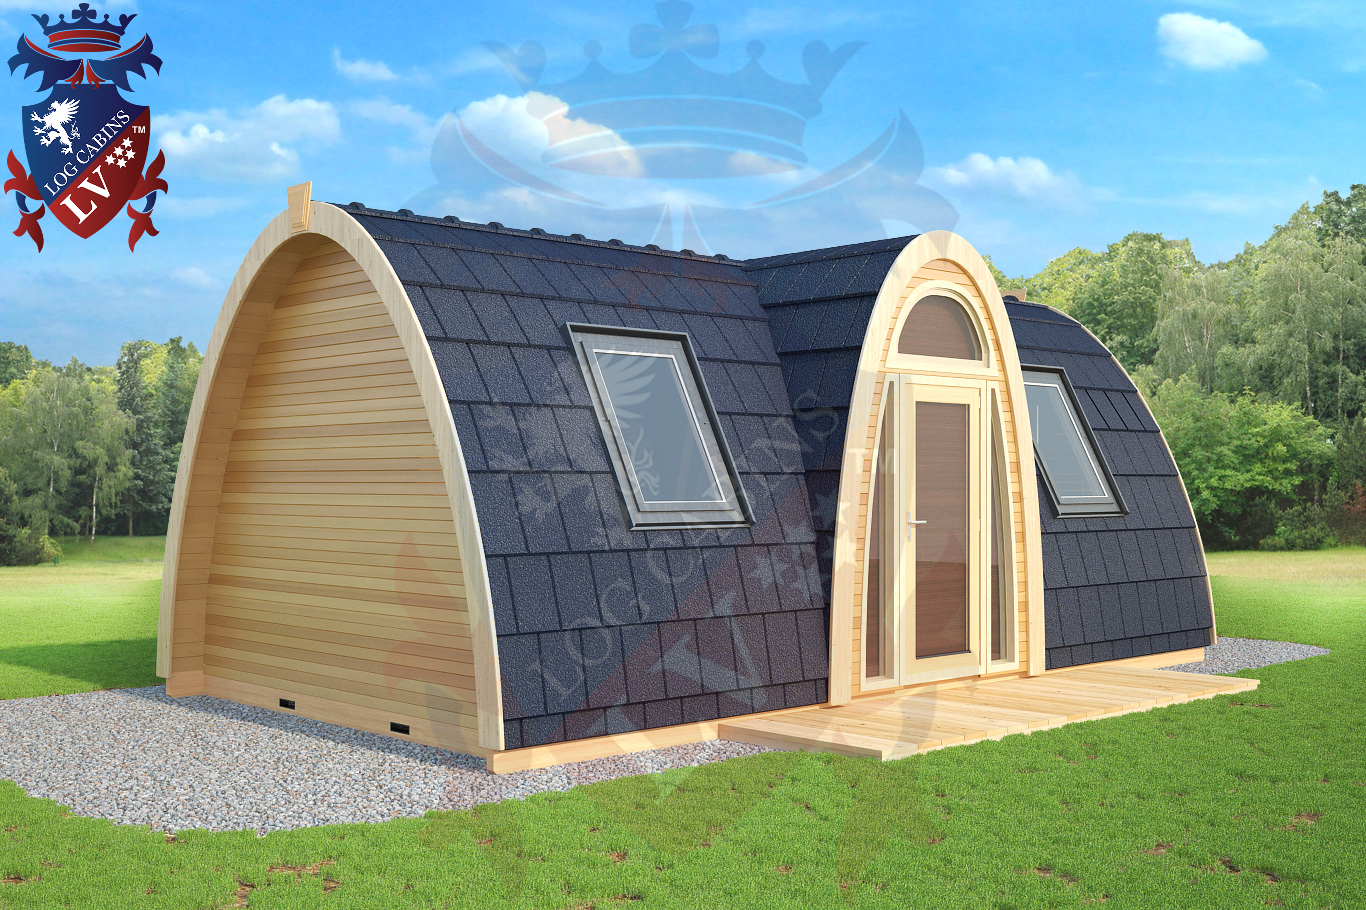 Www Campingpods Lv Log Cabins Lv Blog